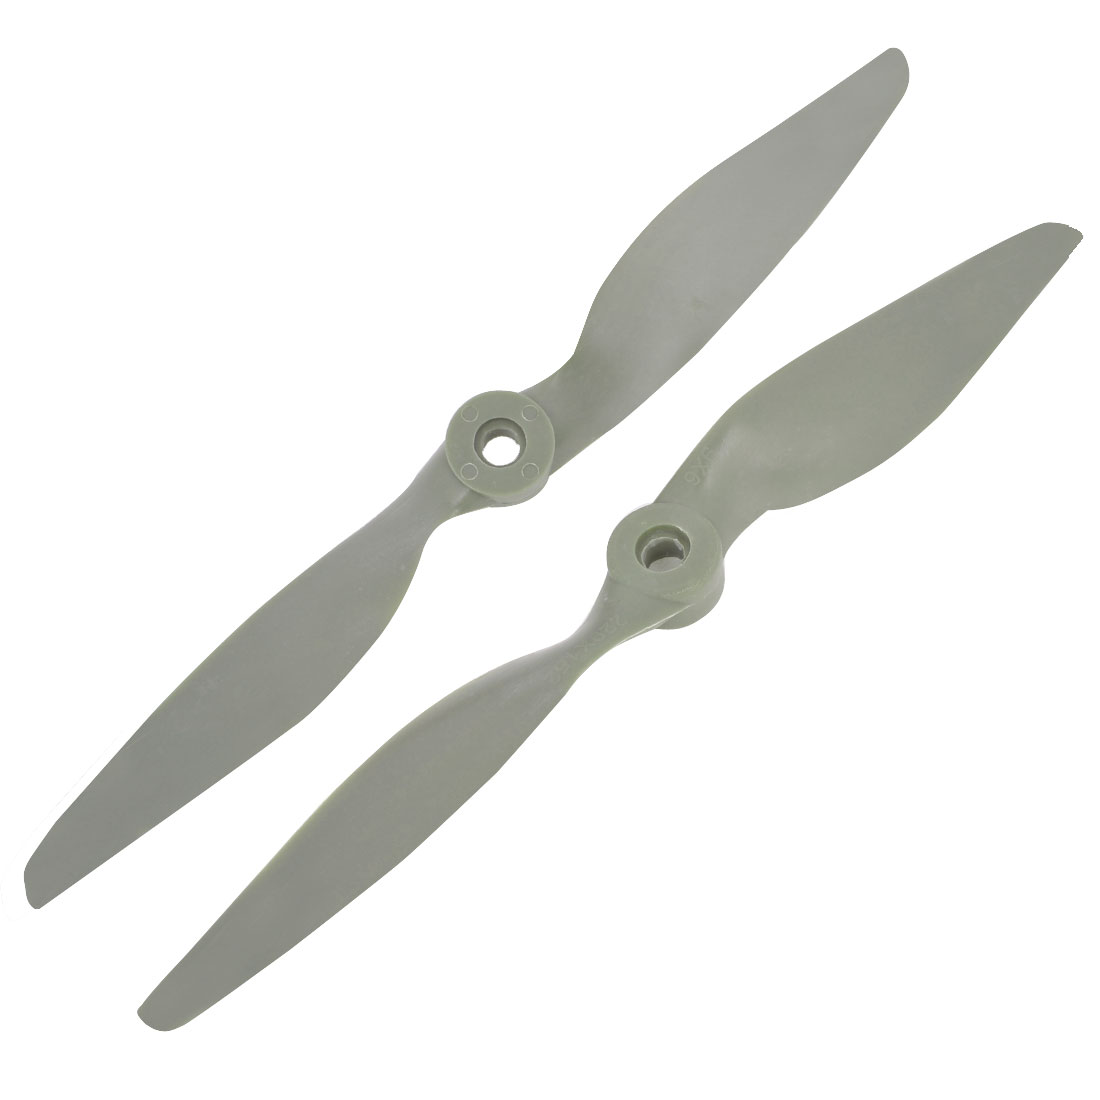 Pair 2 Vanes 9x6 Gray Plastic Propeller for 9.7mm Shaft Dia RC Aircraft Toy